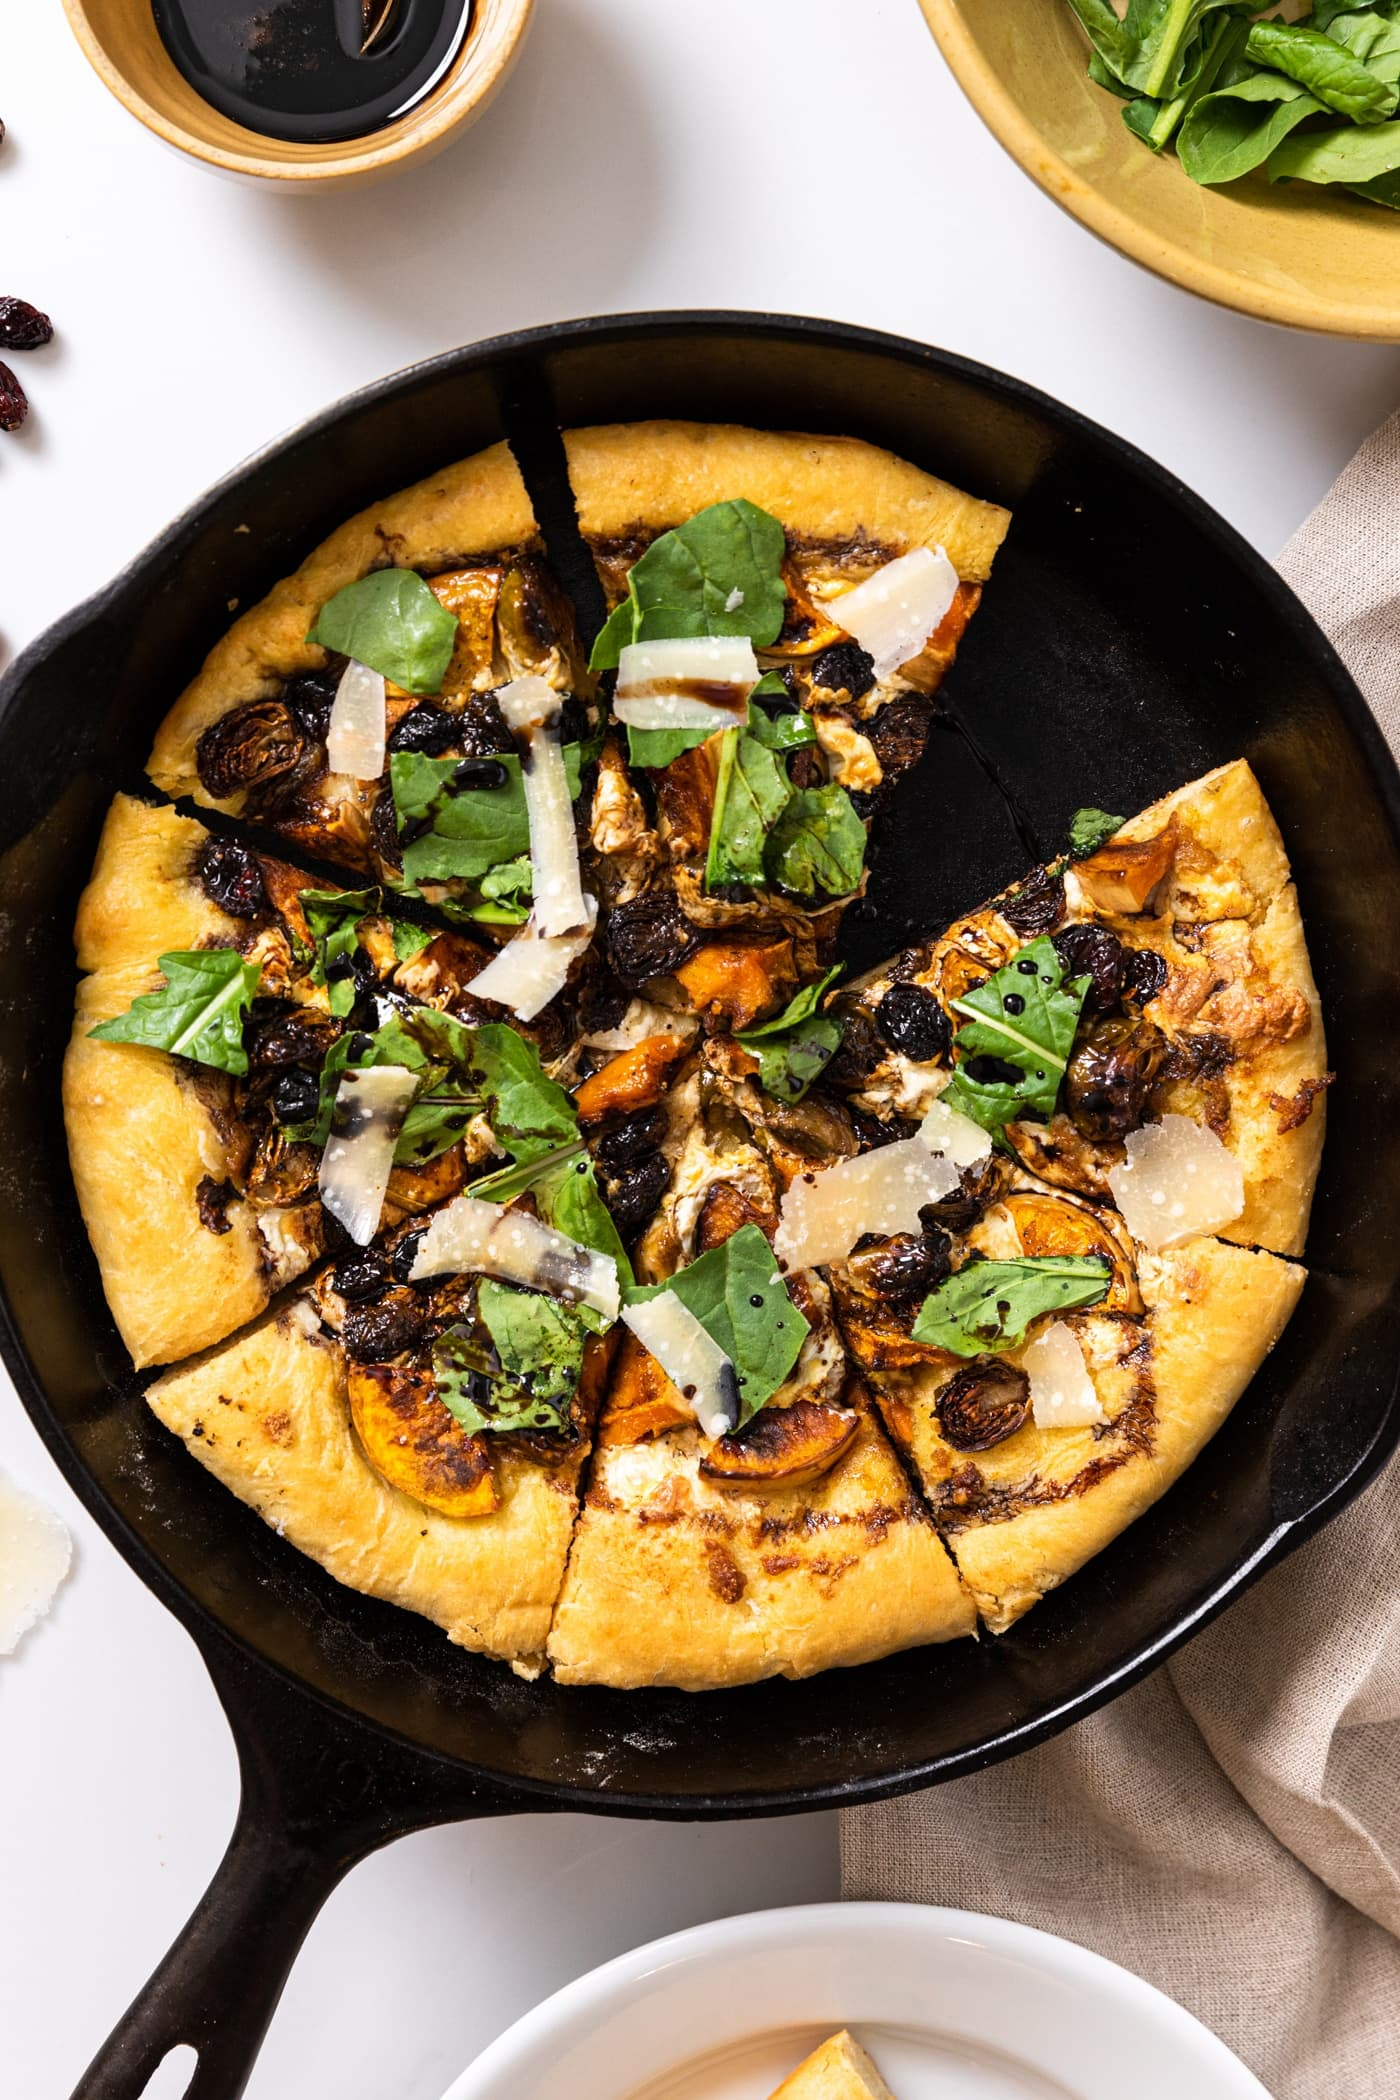 Top down view of black skillet with homemade pizza inside topped with arugula and sitting on a white countertop with other ingredients all around